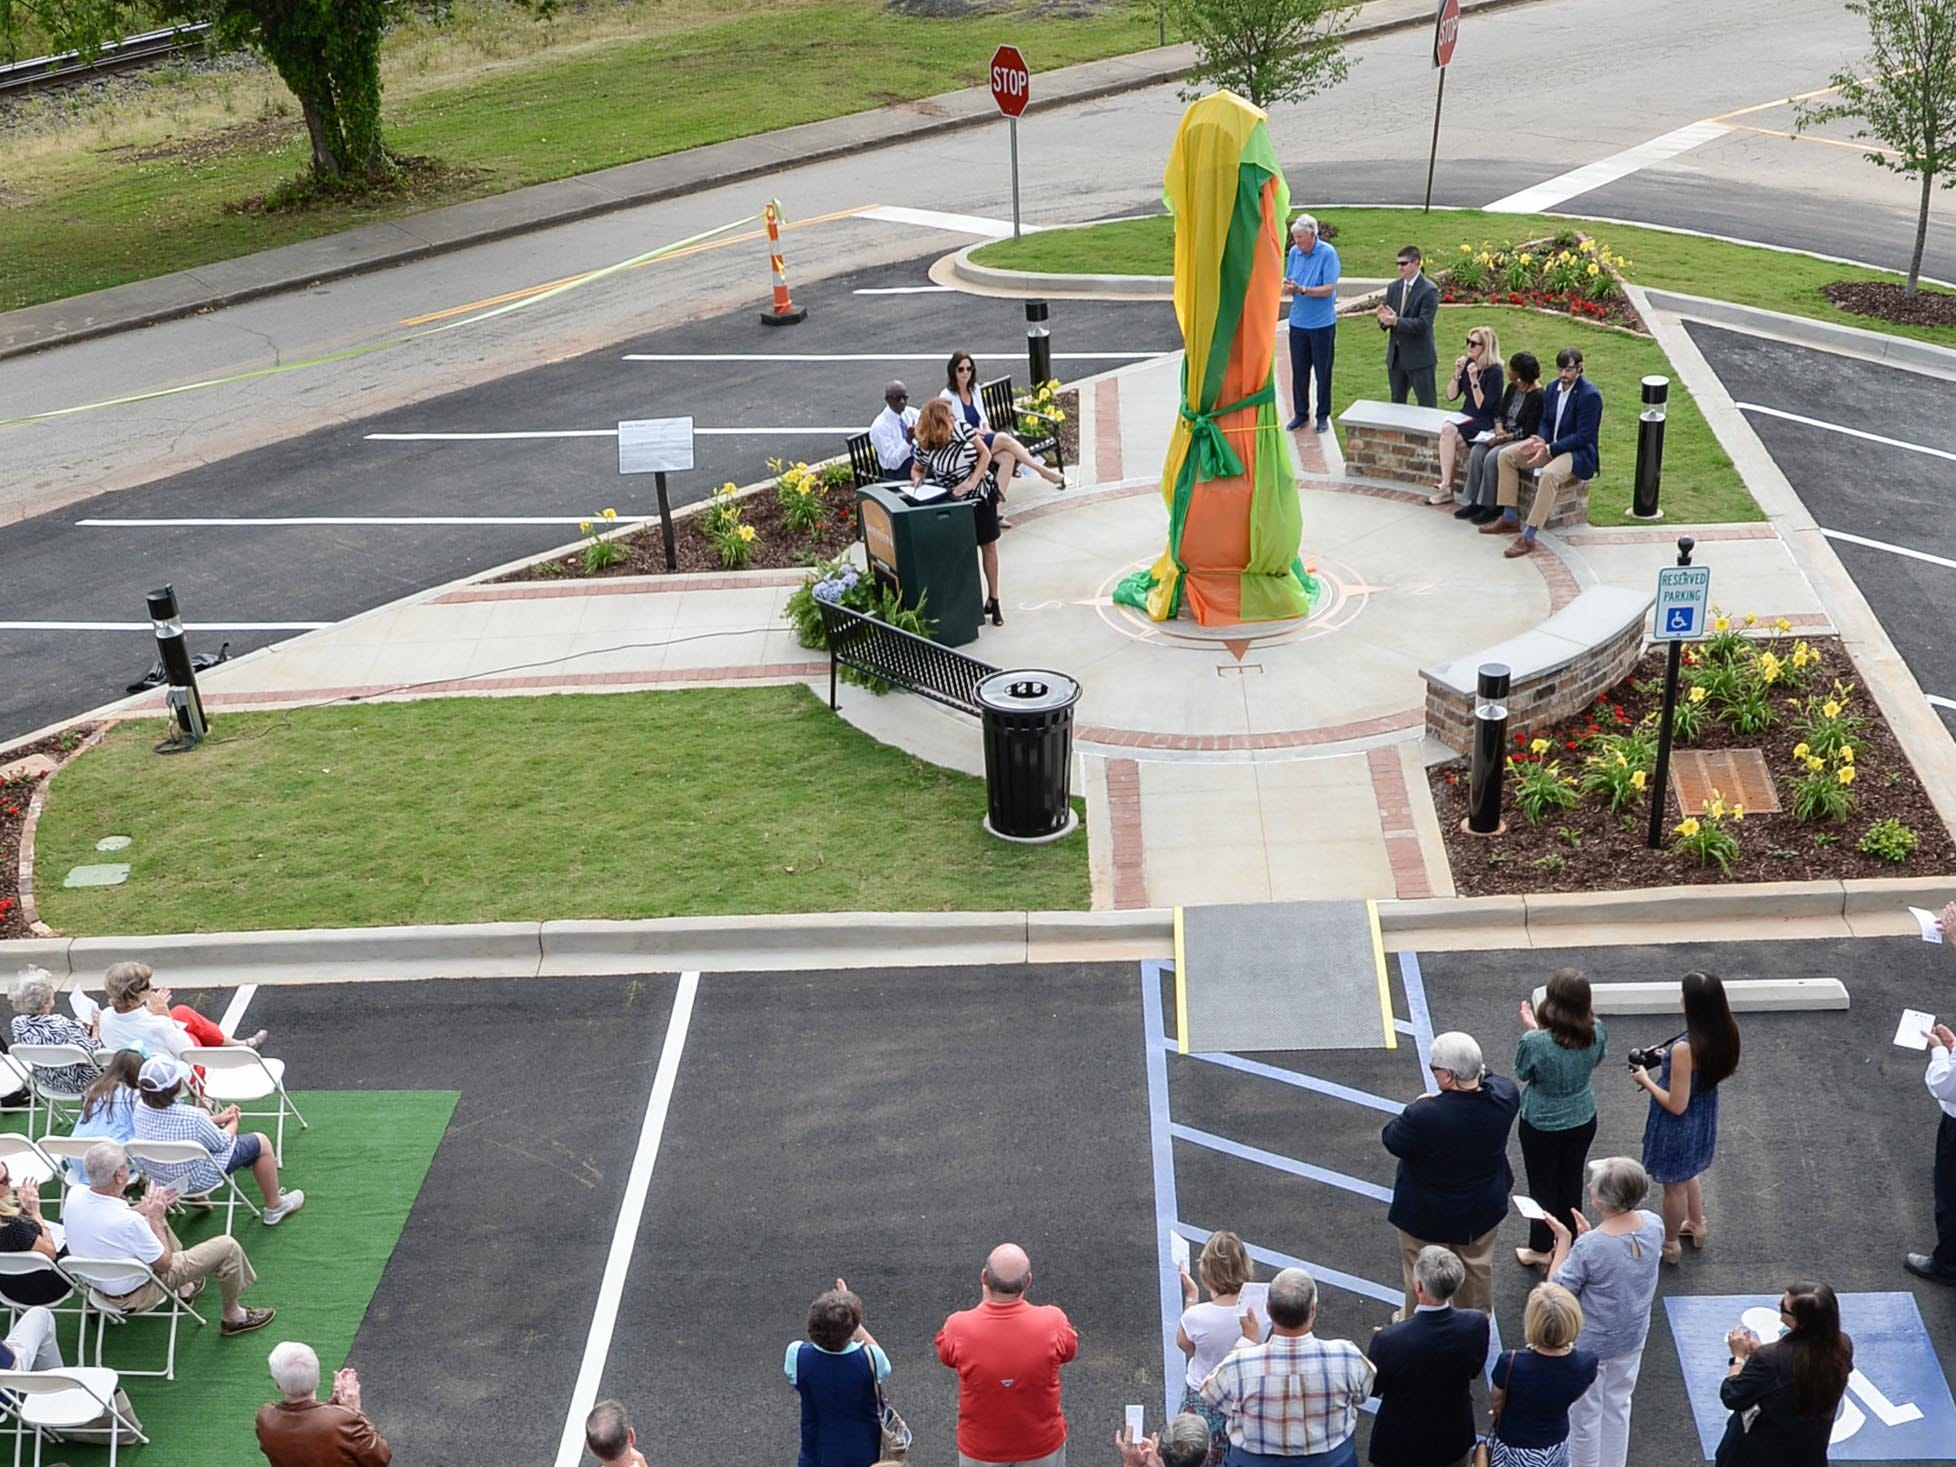 Kimberly Spears, city Economic Development Director, speaks before helping unveil the Under the bridge project called Textile Point in downtown Anderson Thursday, May 9, 2019. Scott Foster of Anderson designed the monument honoring years of textile mills in Anderson, with support partners from To Benefit Anderson, South Carolina Heritage Corridor, the Rotary Club of Anderson, and the City of Anderson.